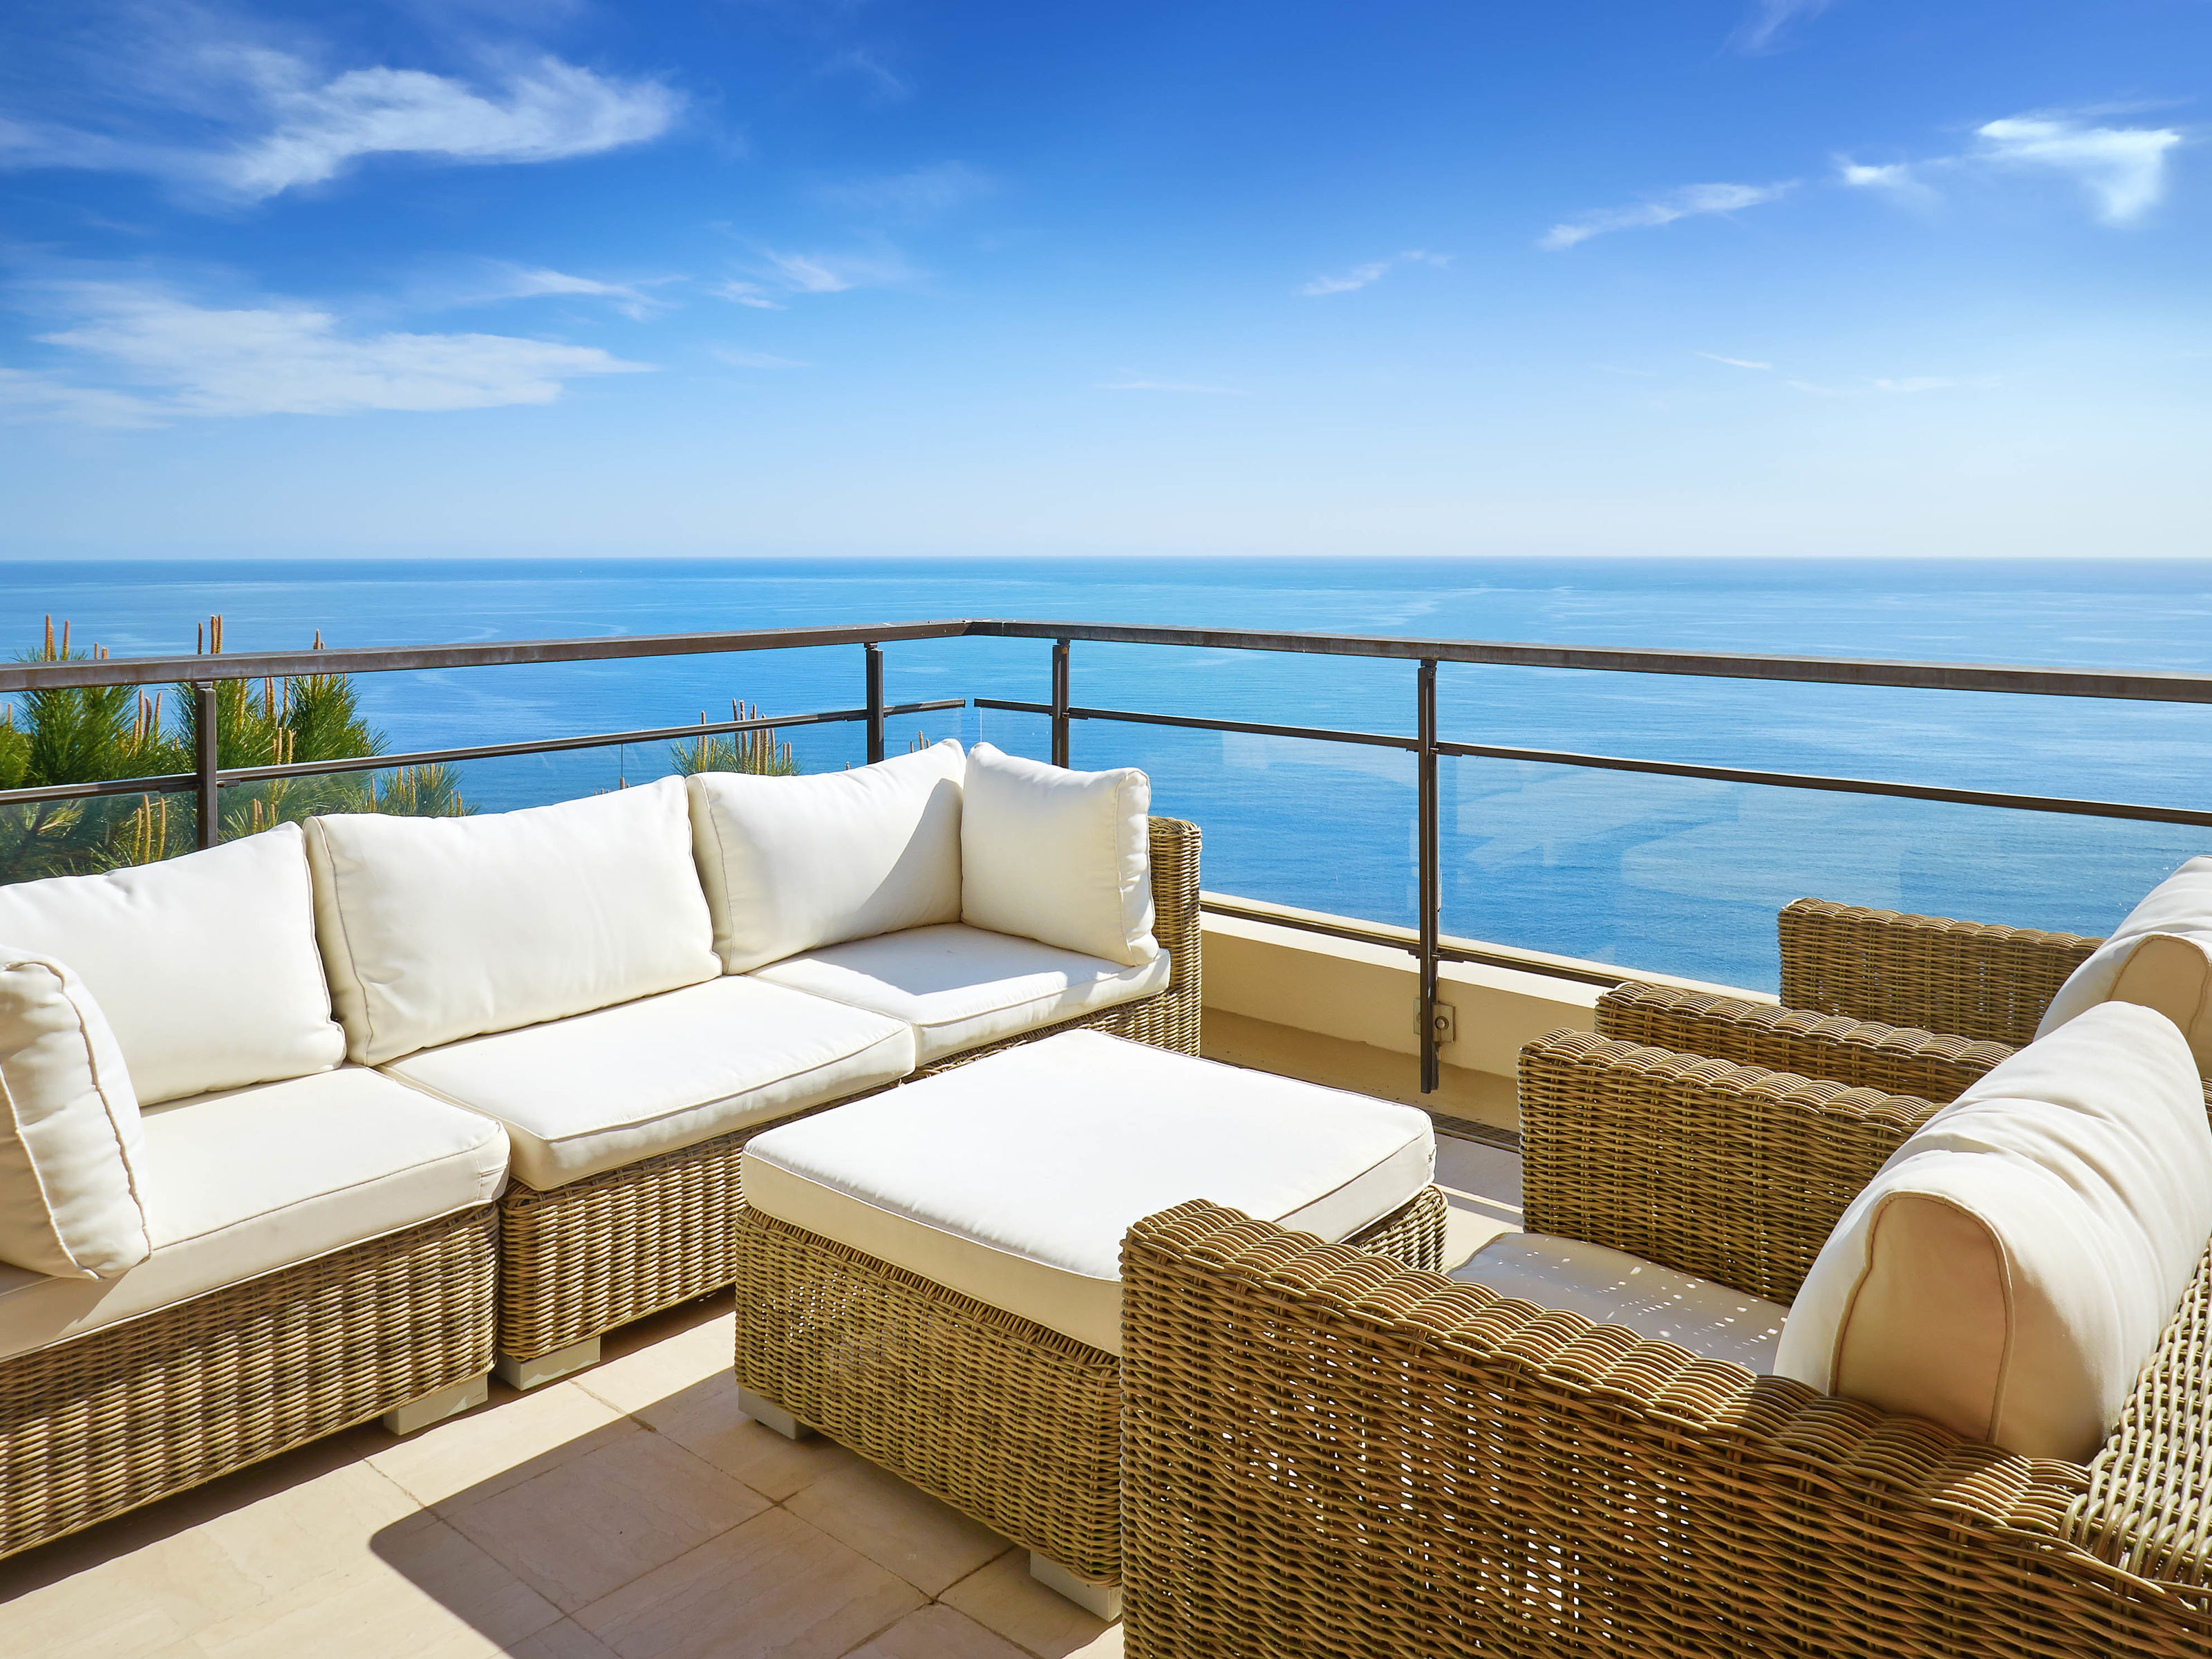 Single Family Home for Sale at Luxury duplex apartment with large terraces and panoramic sea view Nice, Provence-Alpes-Cote D'Azur 06300 France